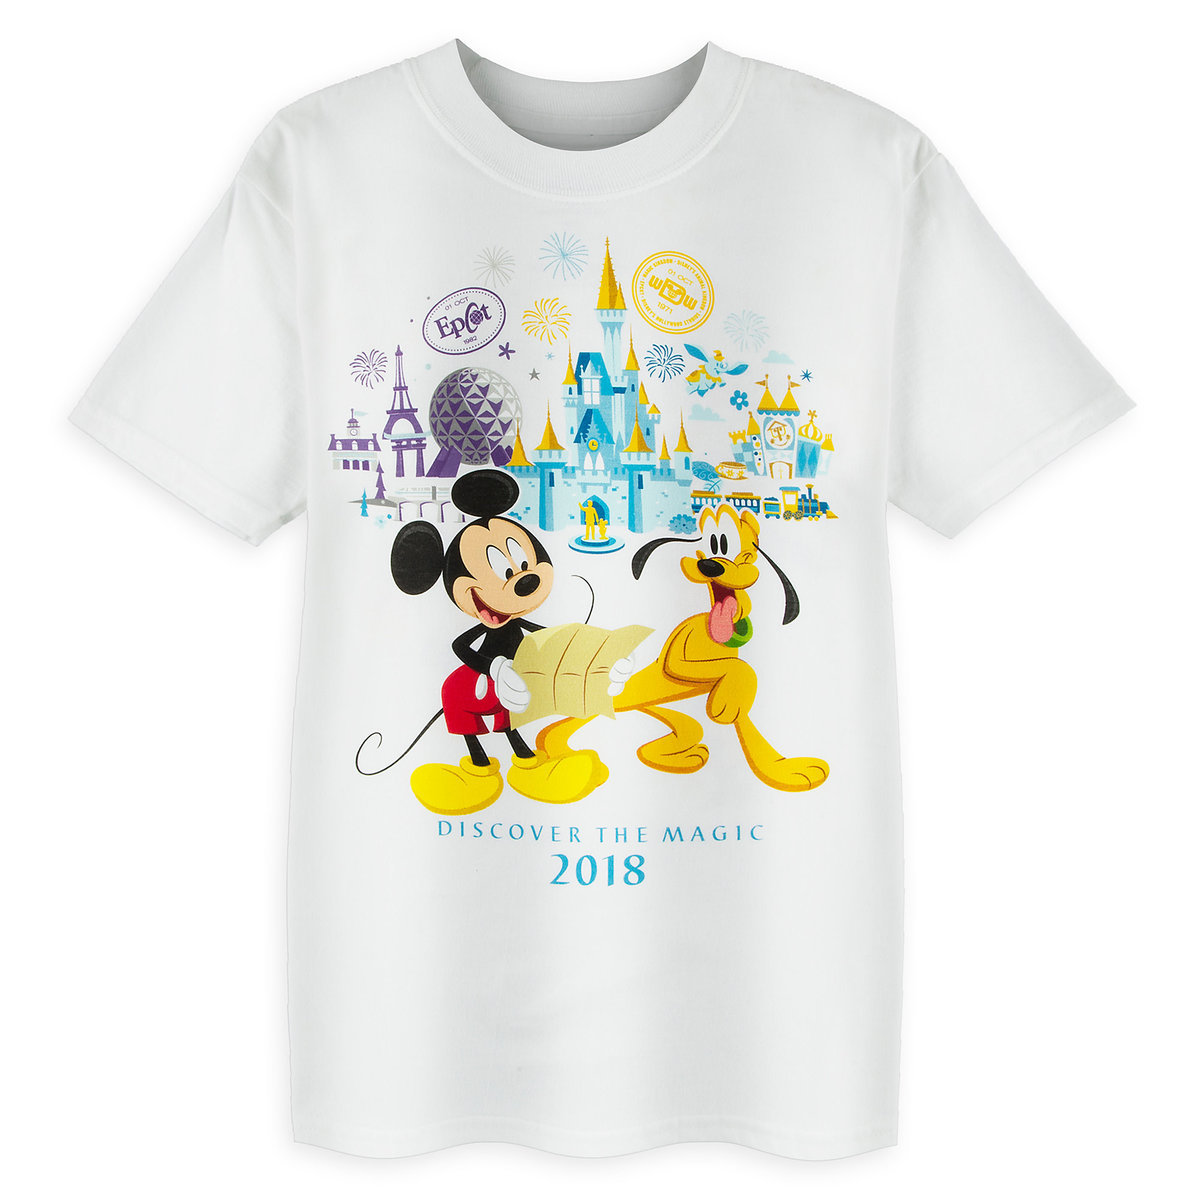 Disney Child Shirt - 2018 Discover the Magic Mickey and Friends